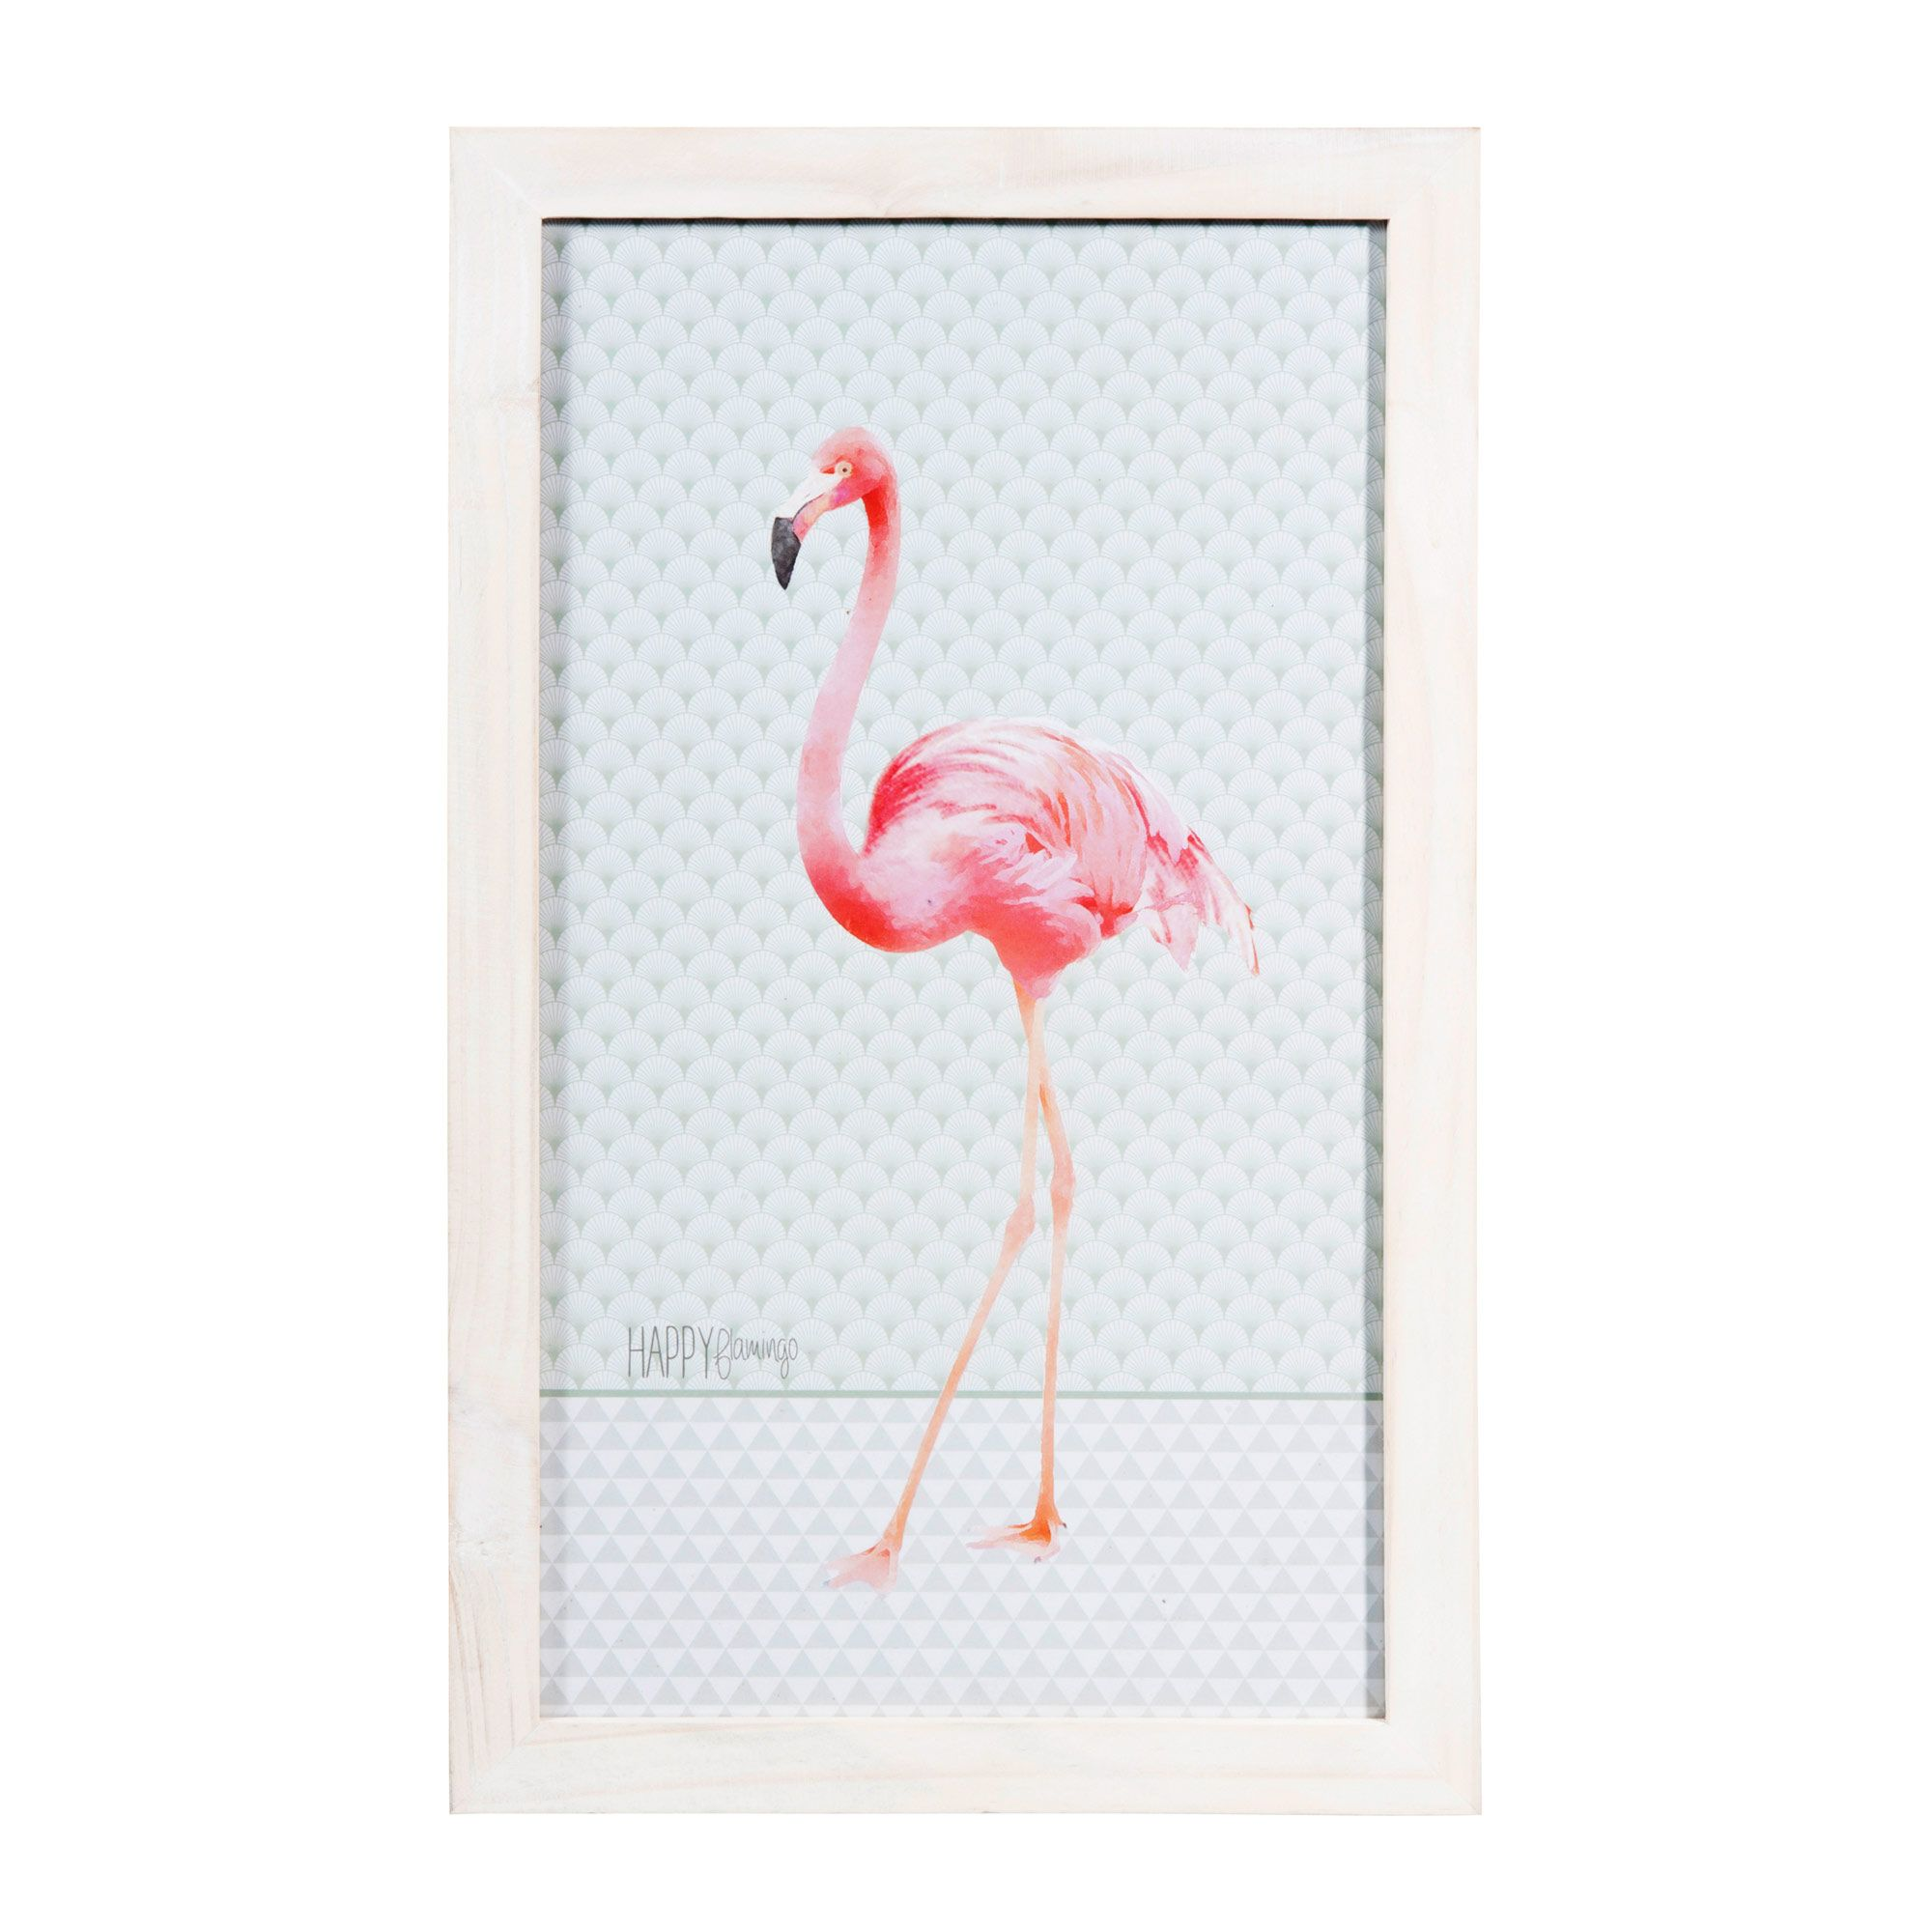 tableau en bois 28 x 46 cm happy flamingo maisons du monde pink flamingo flamant rose. Black Bedroom Furniture Sets. Home Design Ideas